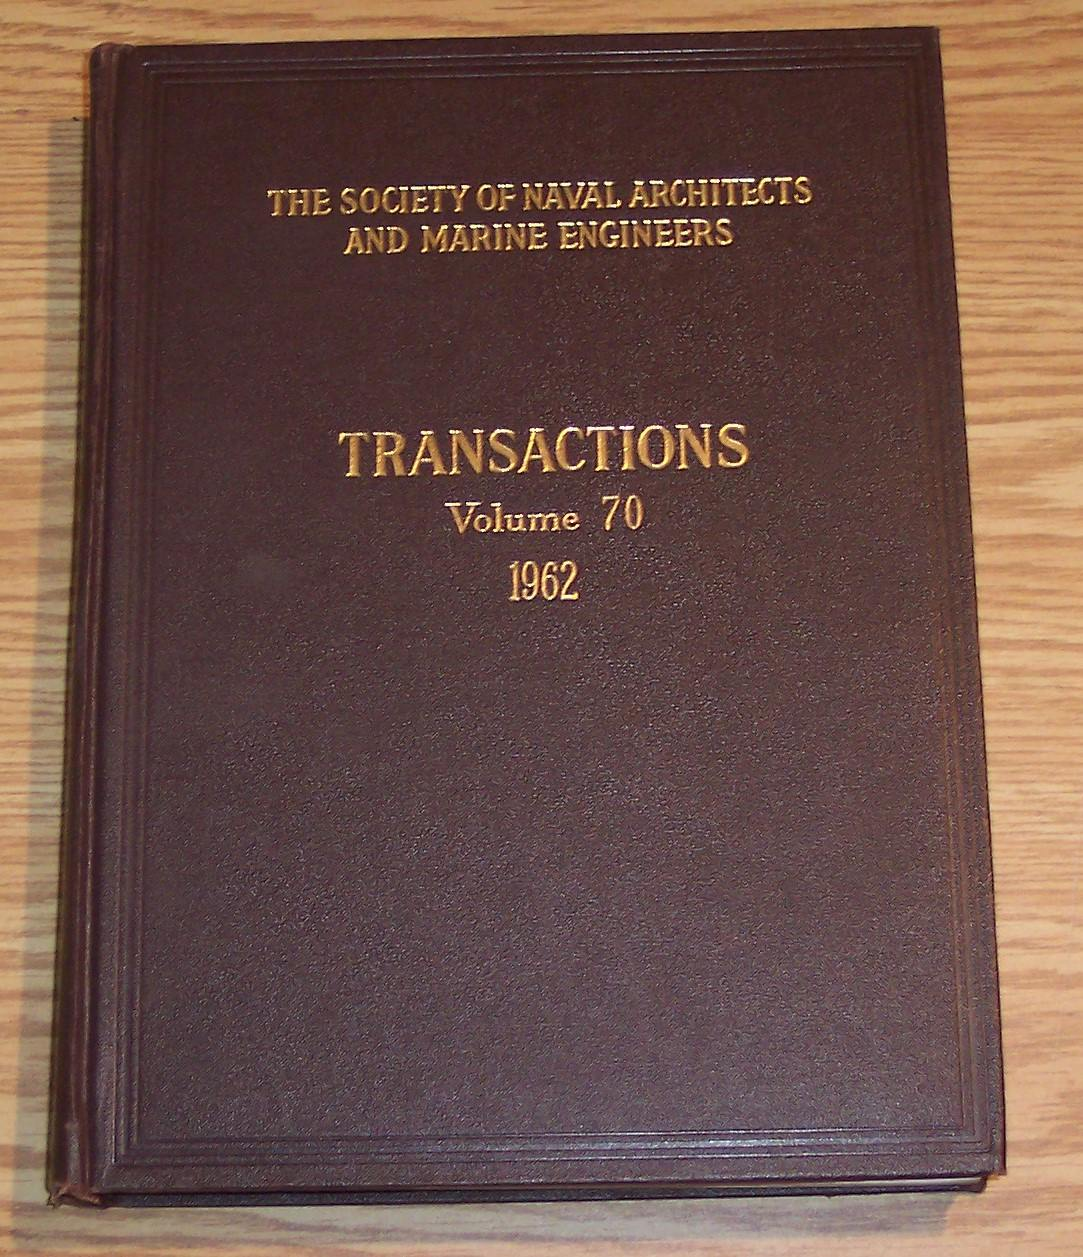 Image for The Society of Naval Architects and Marine Engineers Transactions Volume 70 1962